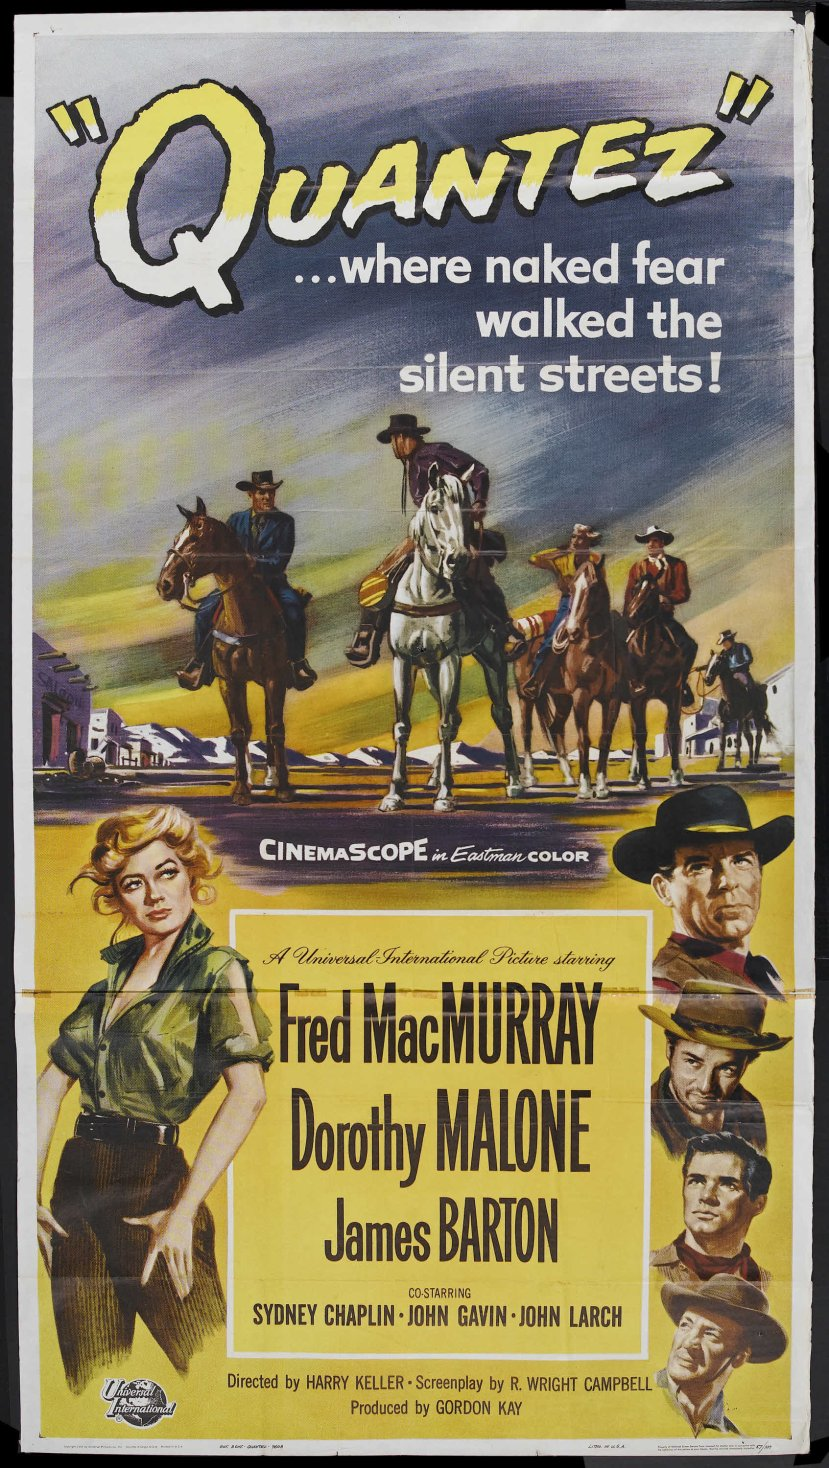 an analysis of the enigma westerner character in western genre film The rewriting of the western hero in the gus character, then, goes a long way toward explaining why lonesome dove attracted a mammoth audience in which the women viewers actually outnumbered the men for a story in a genre that has traditionally been written almost exclusively by men for men, this was no small accomplishment.